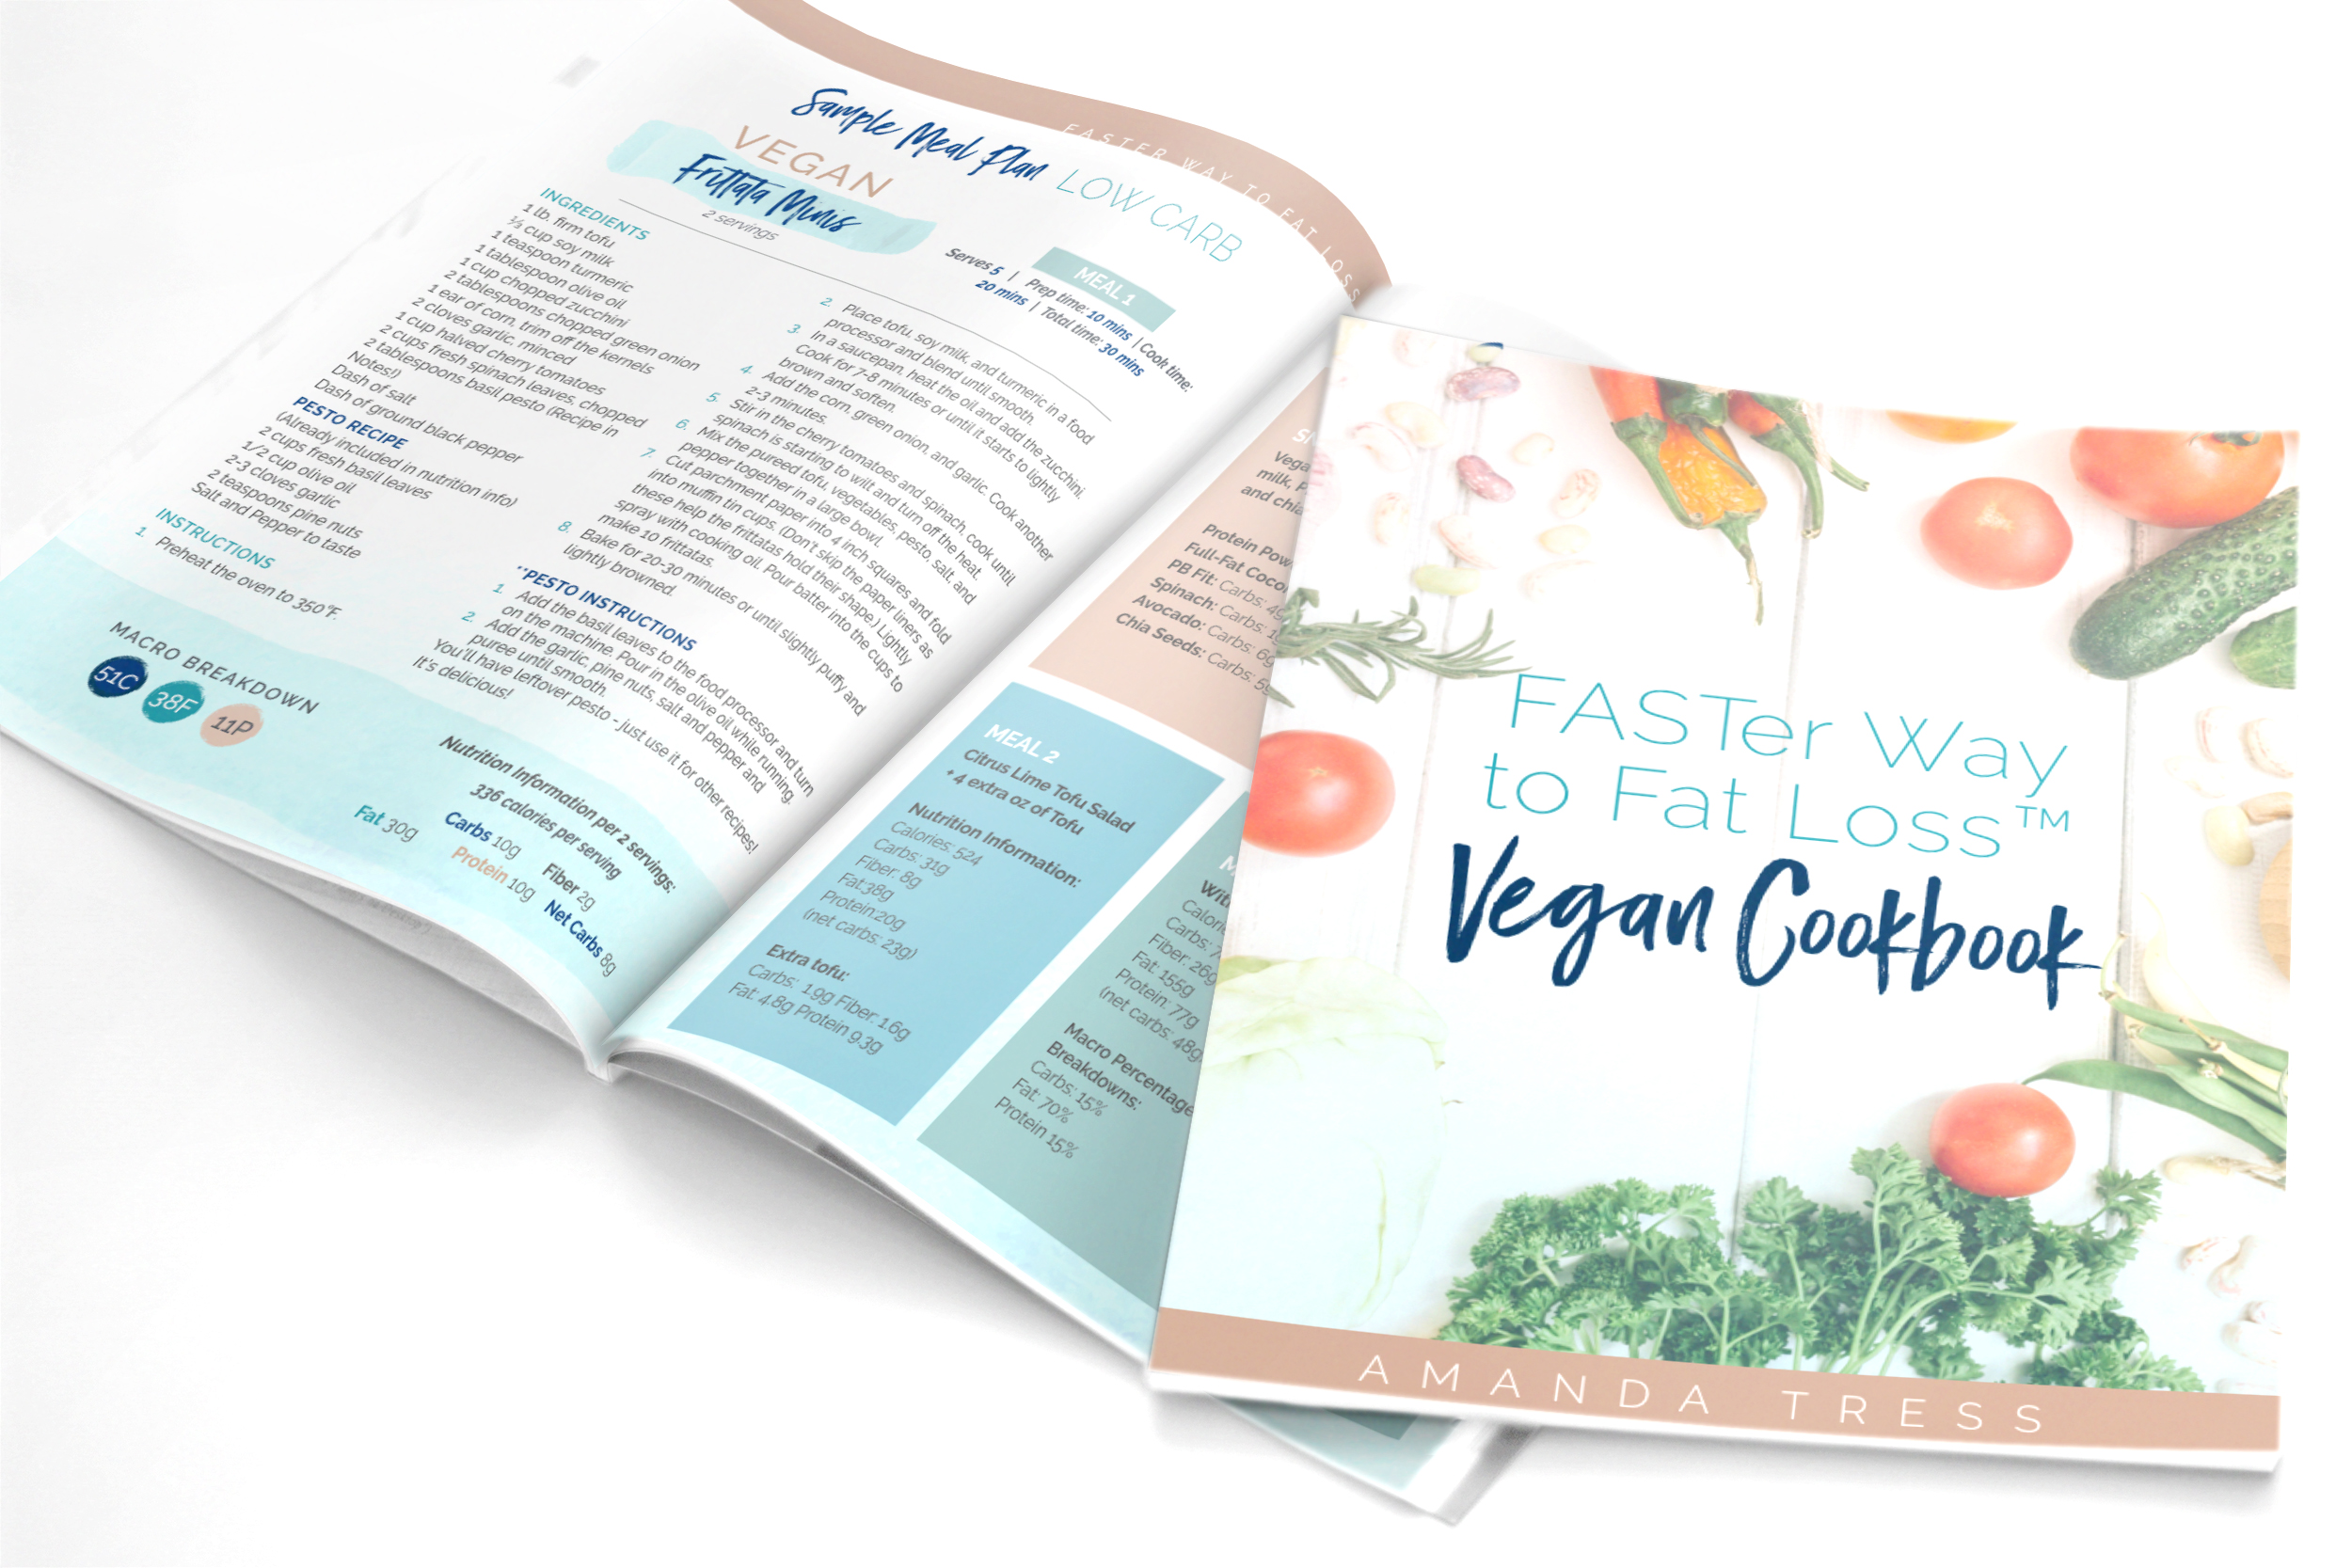 FASTer Way to Fat Loss Vegan Cookbook -